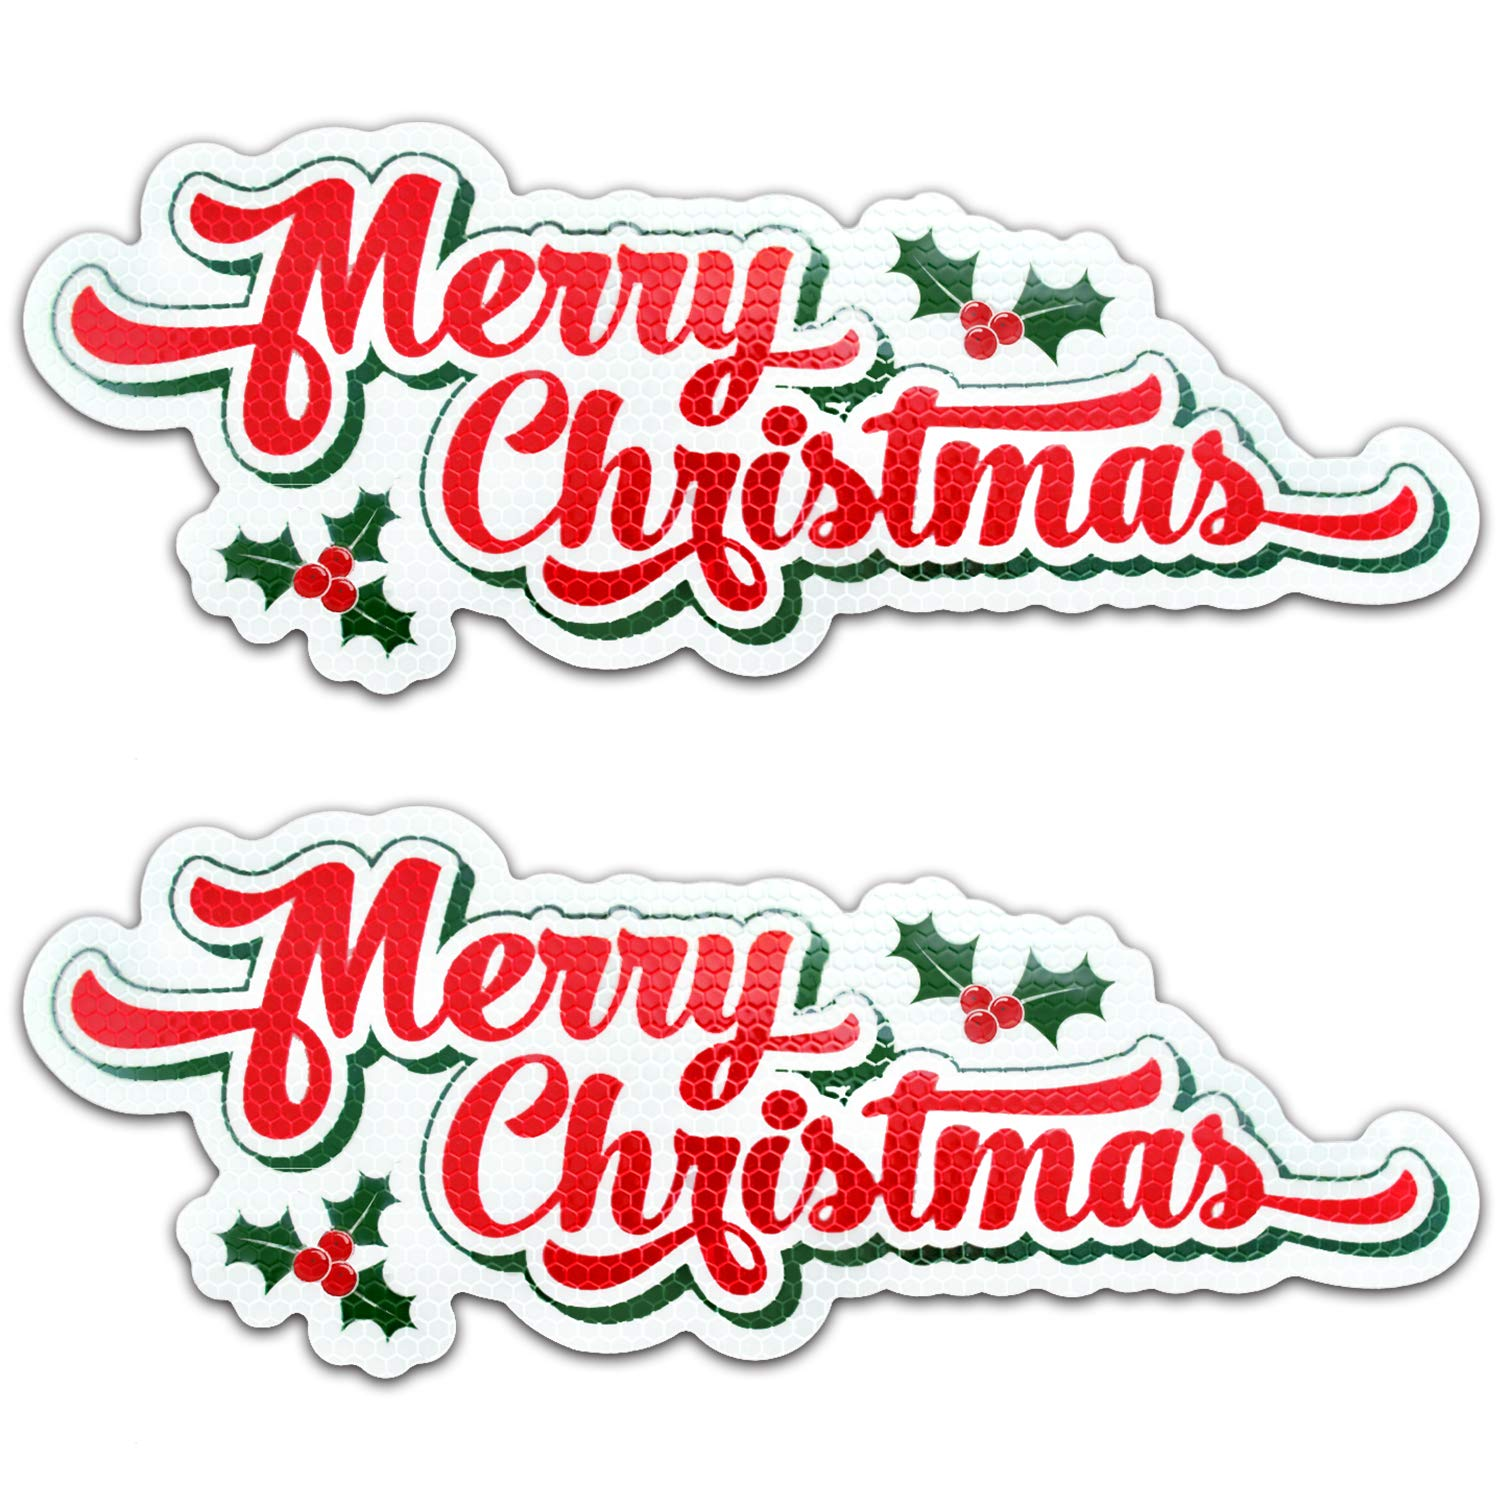 "Bigtime Signs Merry Christmas Reflective Holiday Car Magnet with Printed Holly | Automotive Holiday Decoration| for Fridge or Car | 2 - Pack | 4.25"" x 11"""